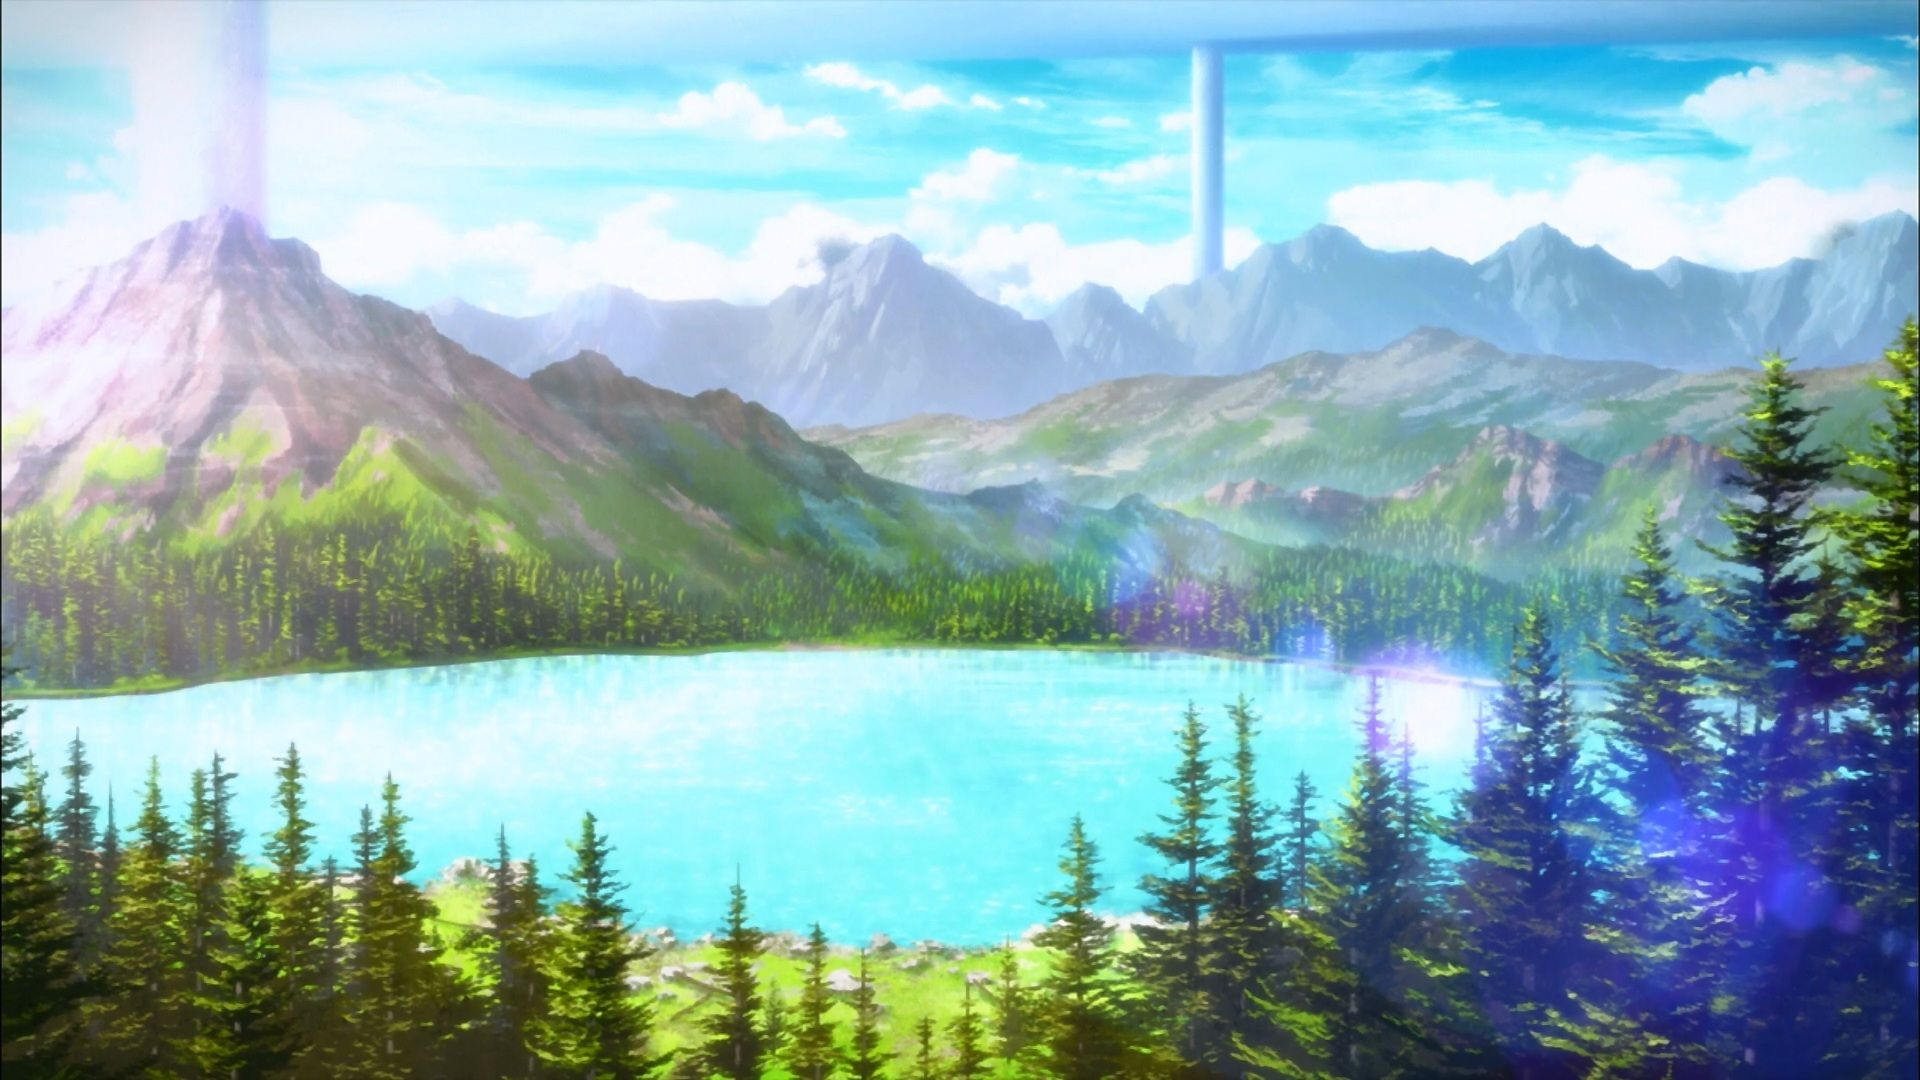 Anime Scenery HD Wallpaper 1920x1080 ID25968 ANIME